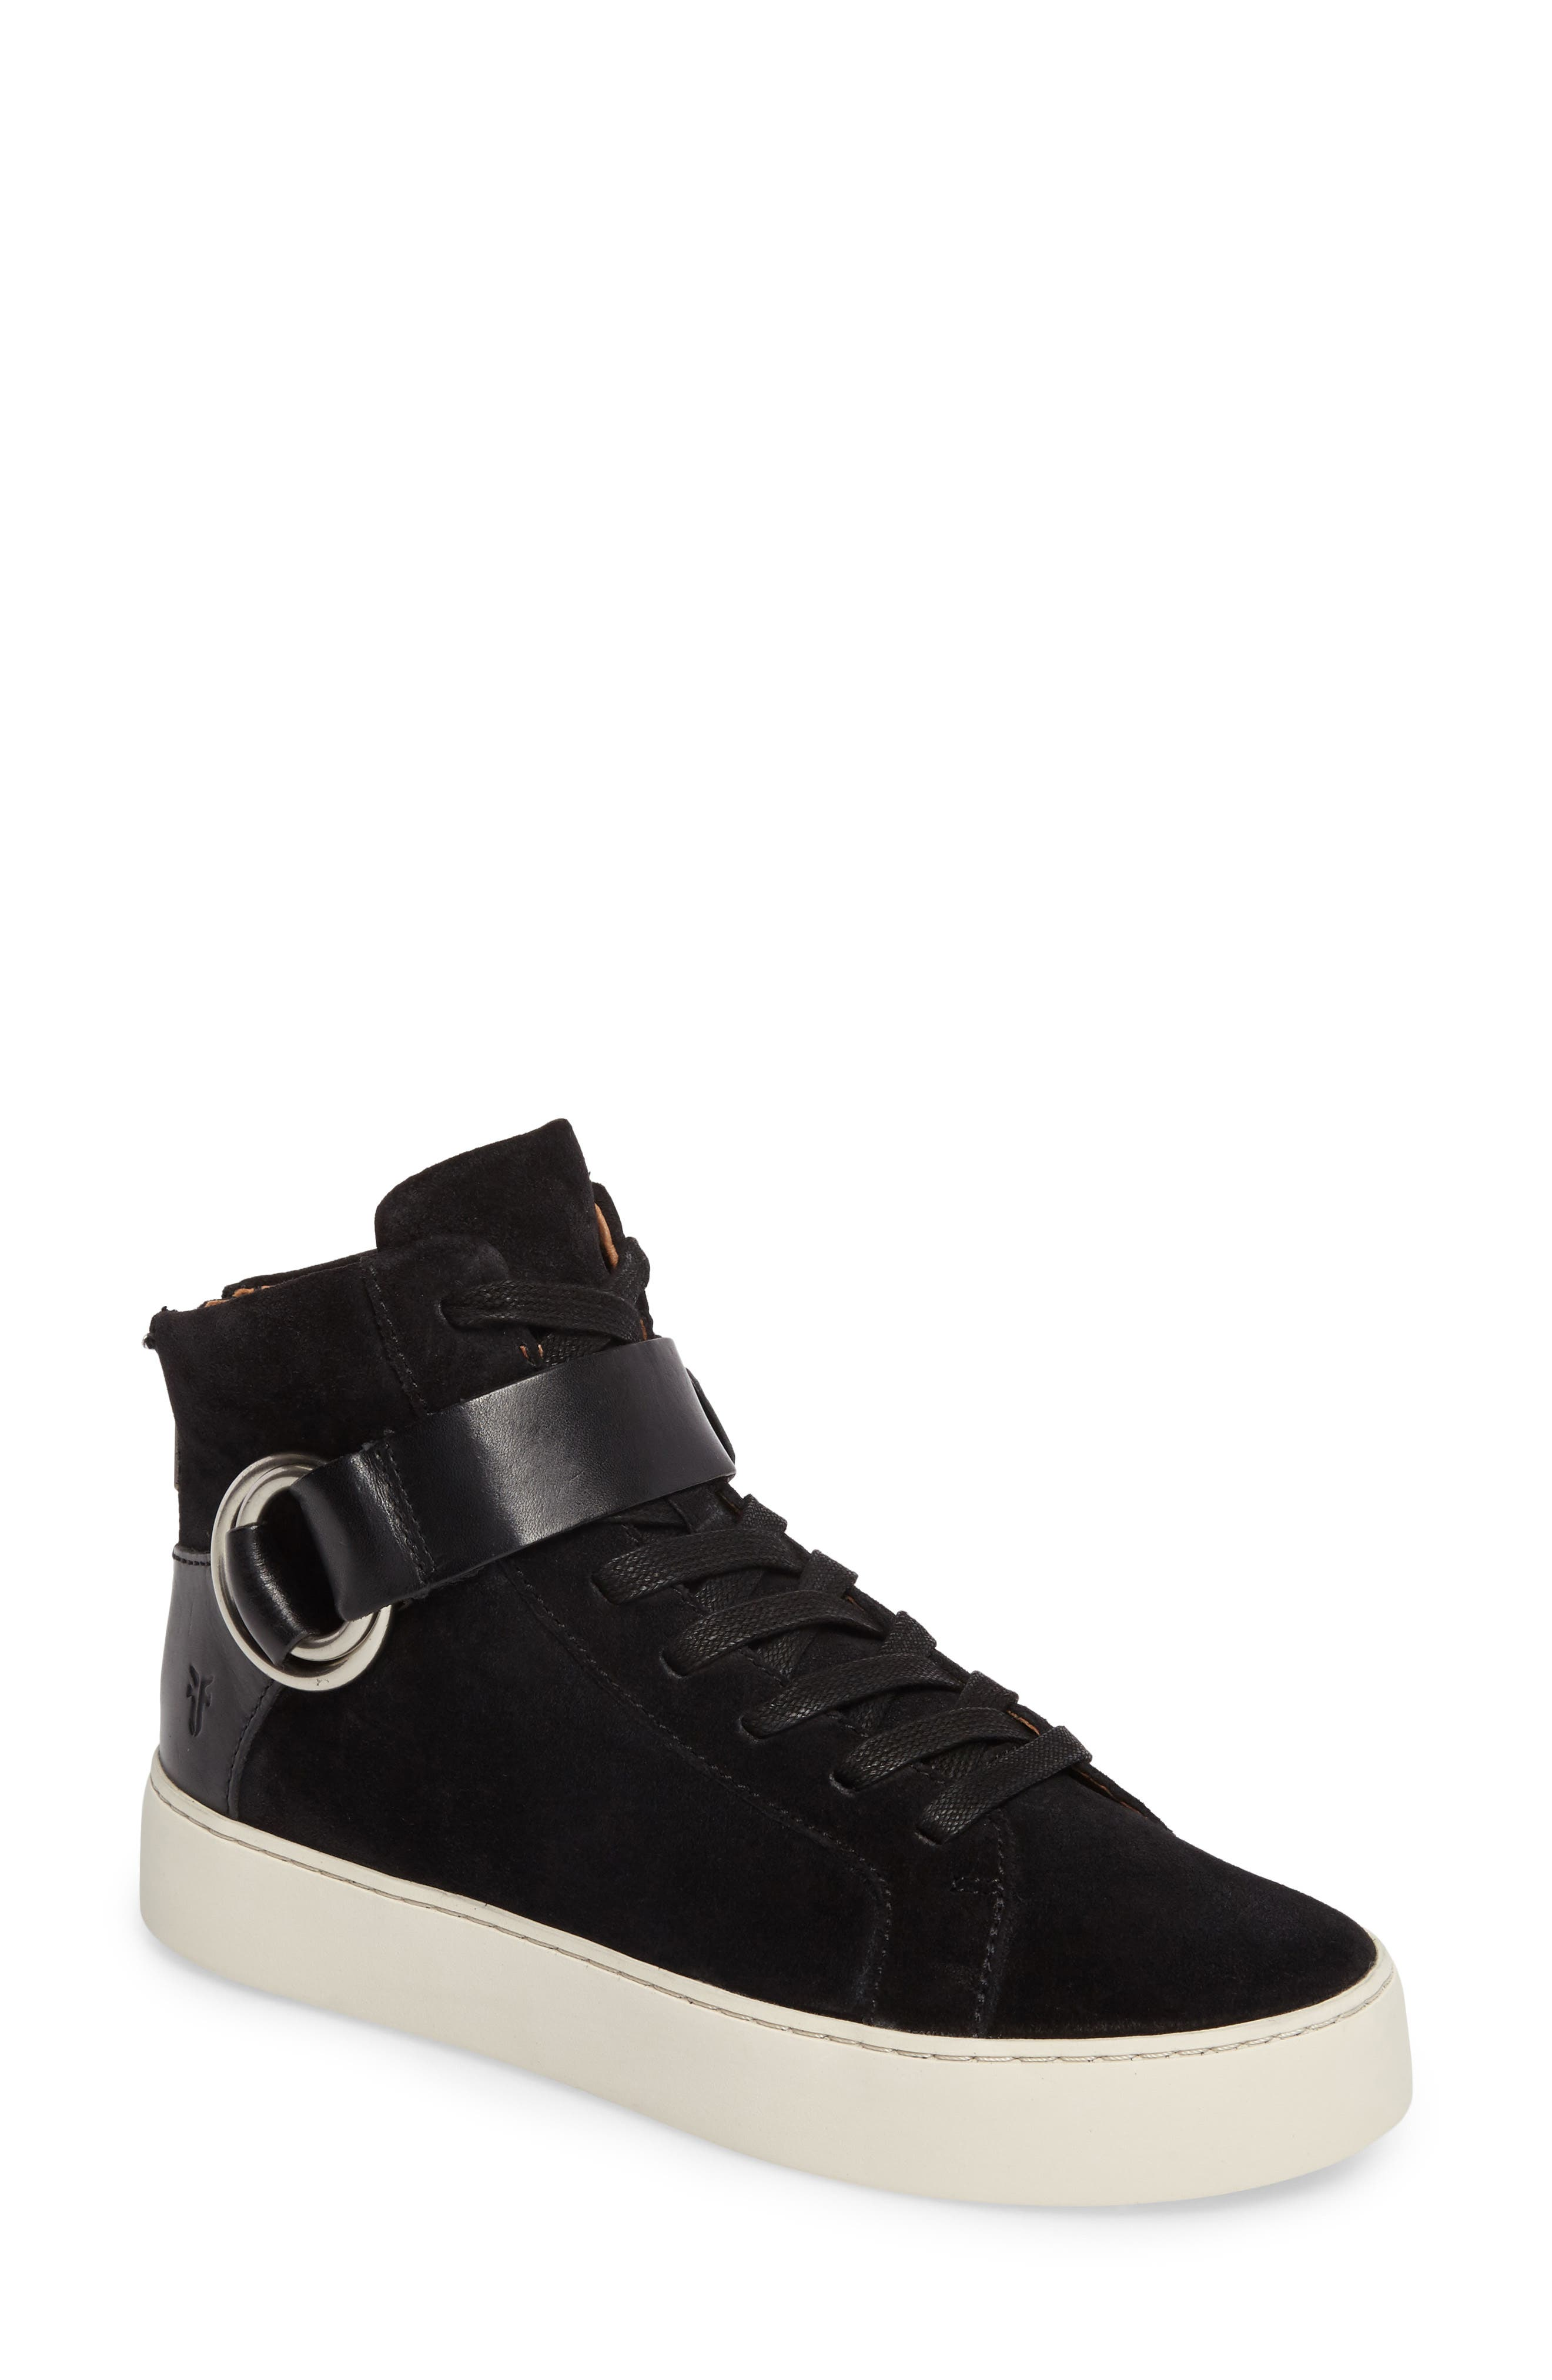 Lena Harness Sneaker,                         Main,                         color,